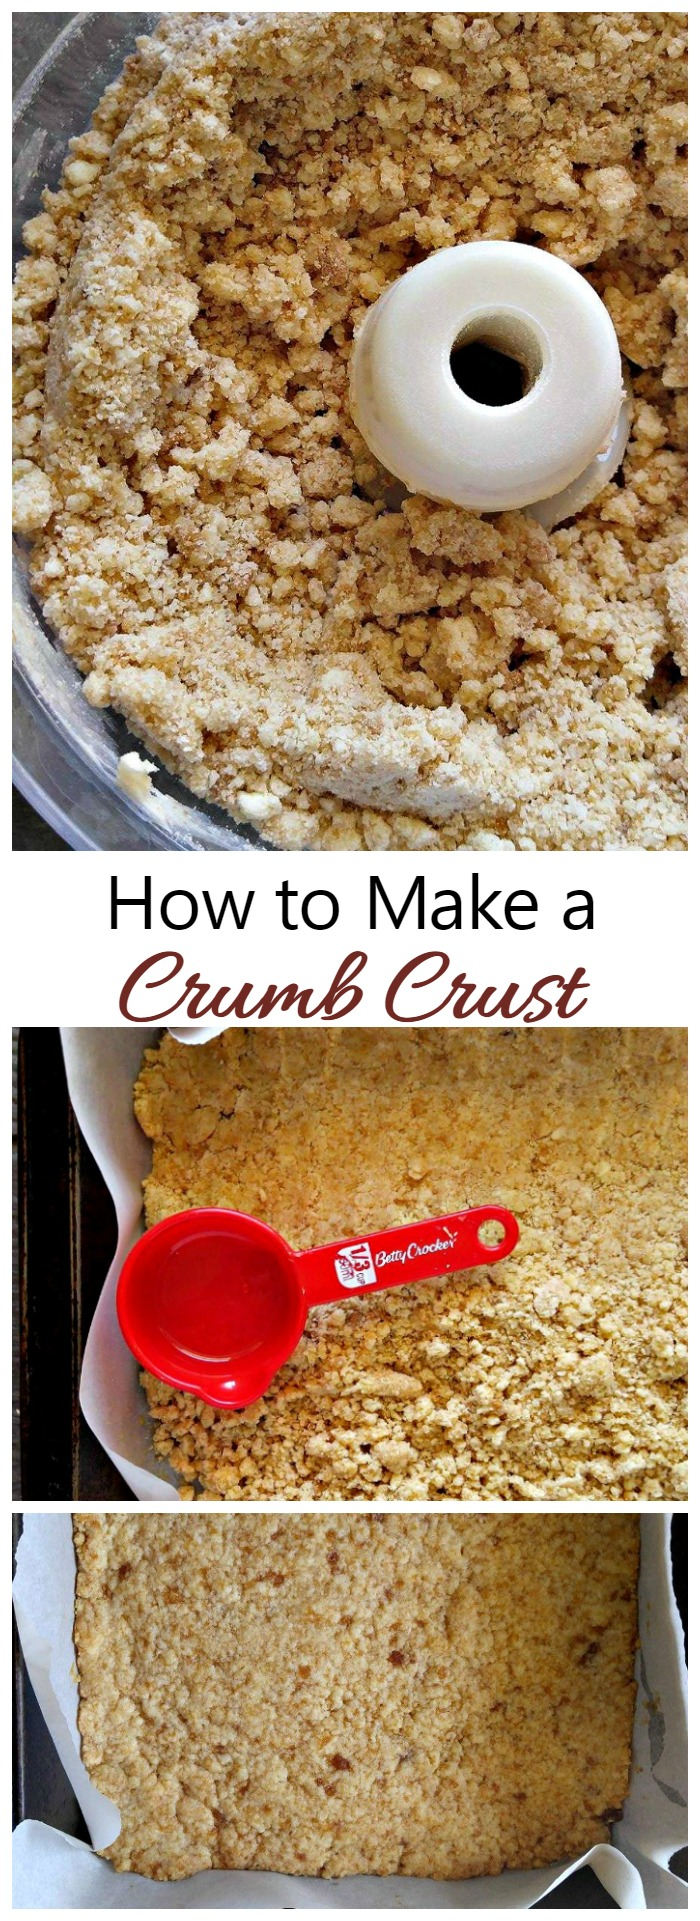 Making the perfect crumb crust is easy with a food processor and just three ingredients. In just seconds, you will have the perfect base for your topping ingredients.